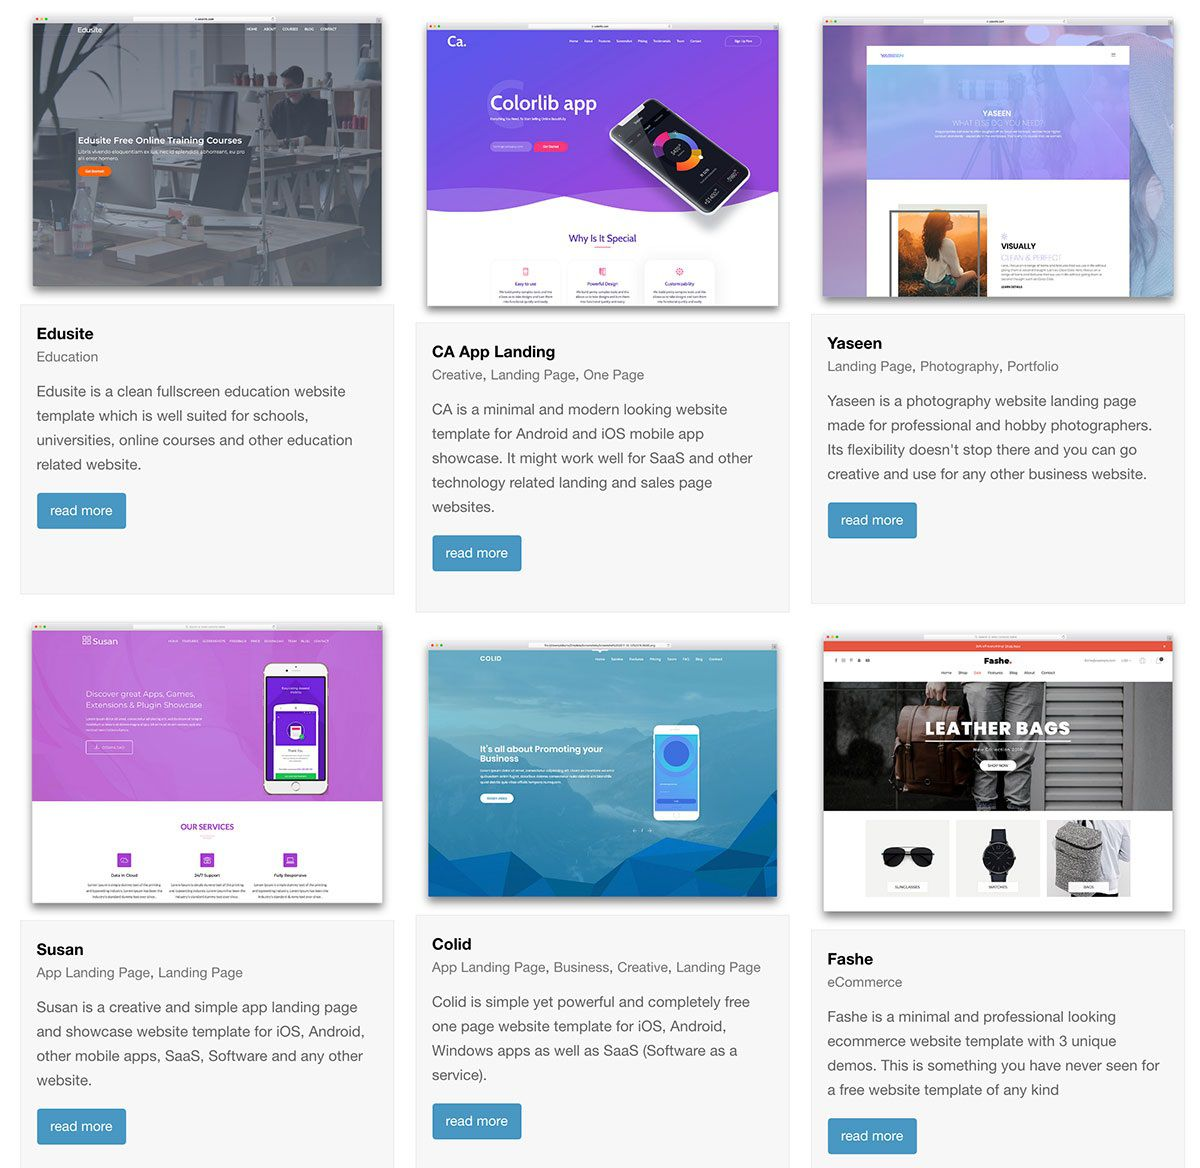 003 Fascinating Website Template Html Code Free Download Inspiration Full